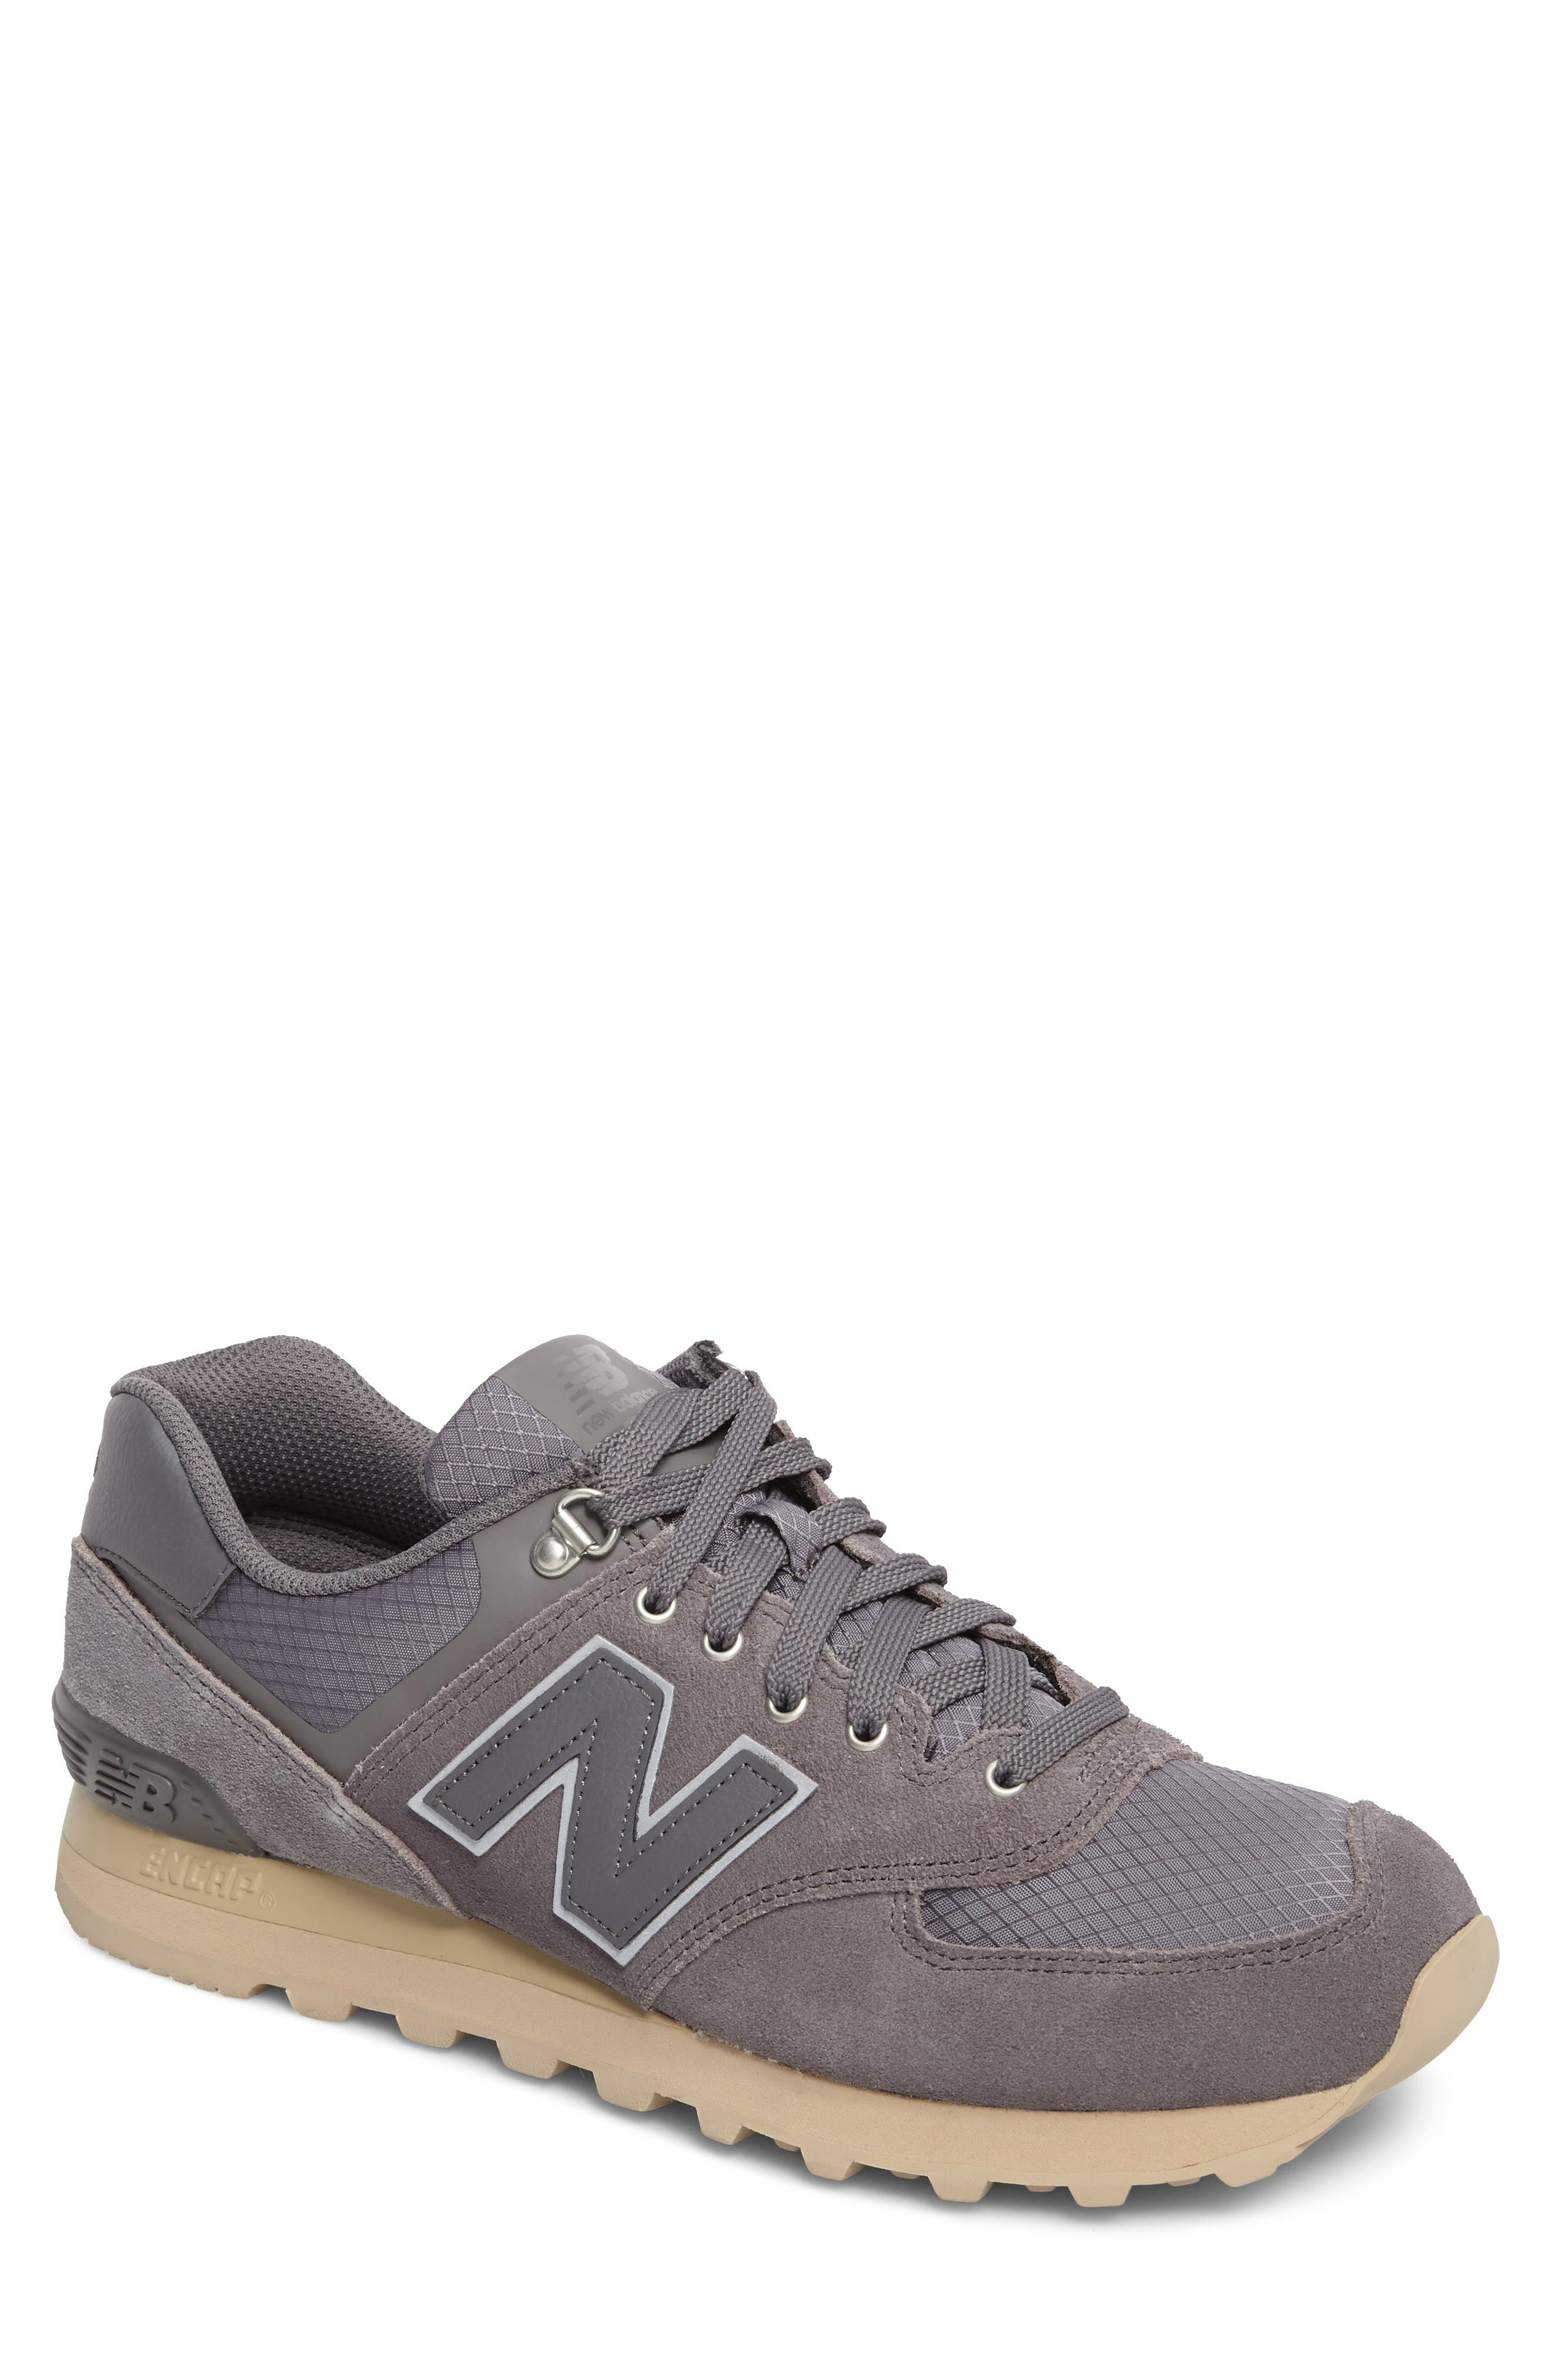 new balance shoes 574 mens. new balance 574 outdoor activist sneaker (men) shoes mens